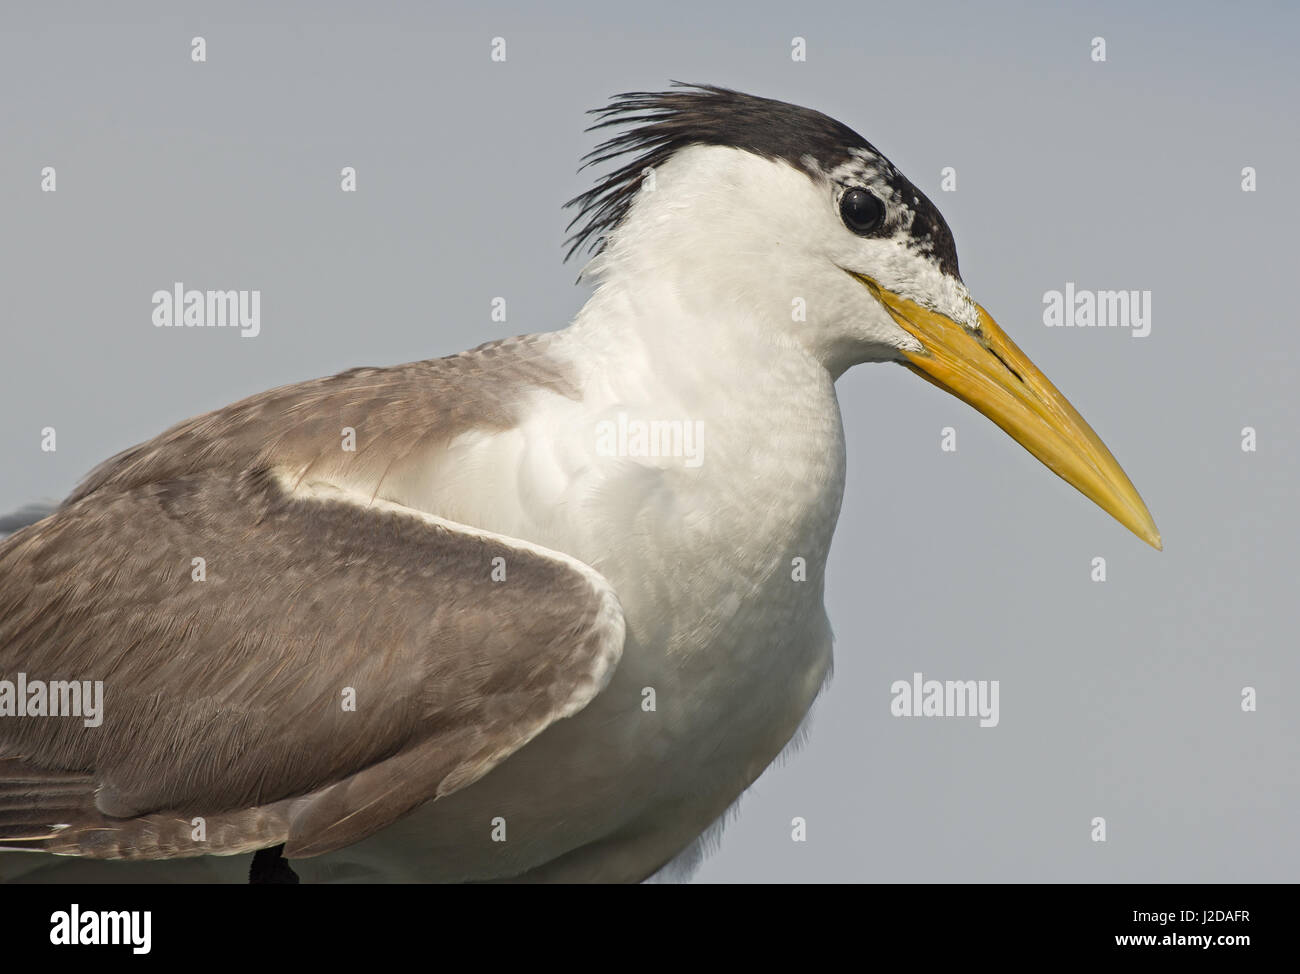 Great Crested Tern - Stock Image